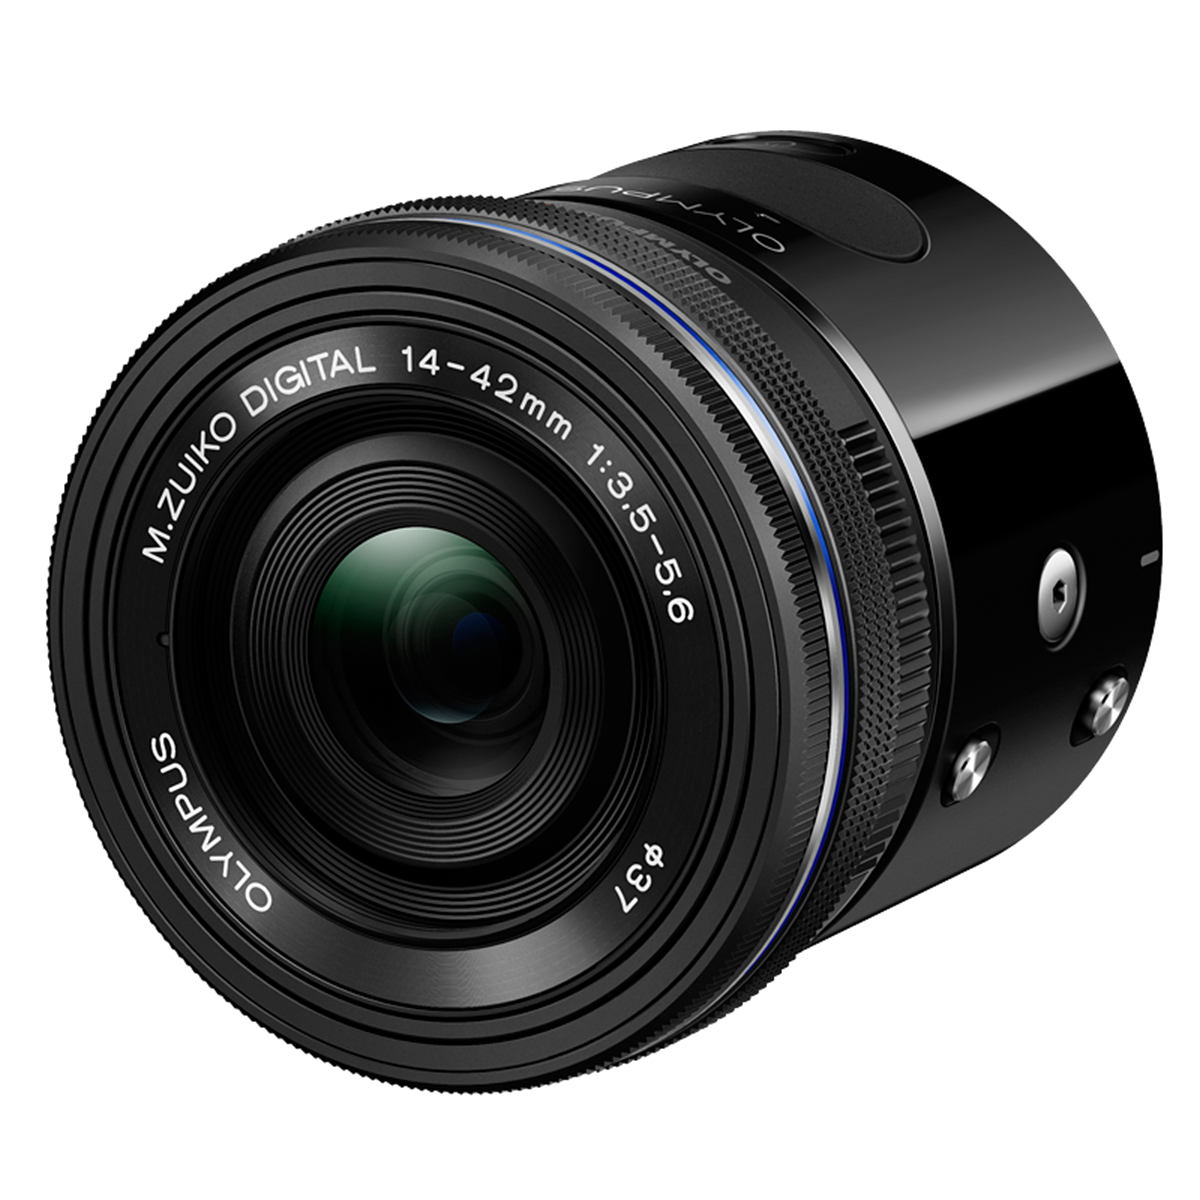 Olympus brings its Air lens-style connected camera to US